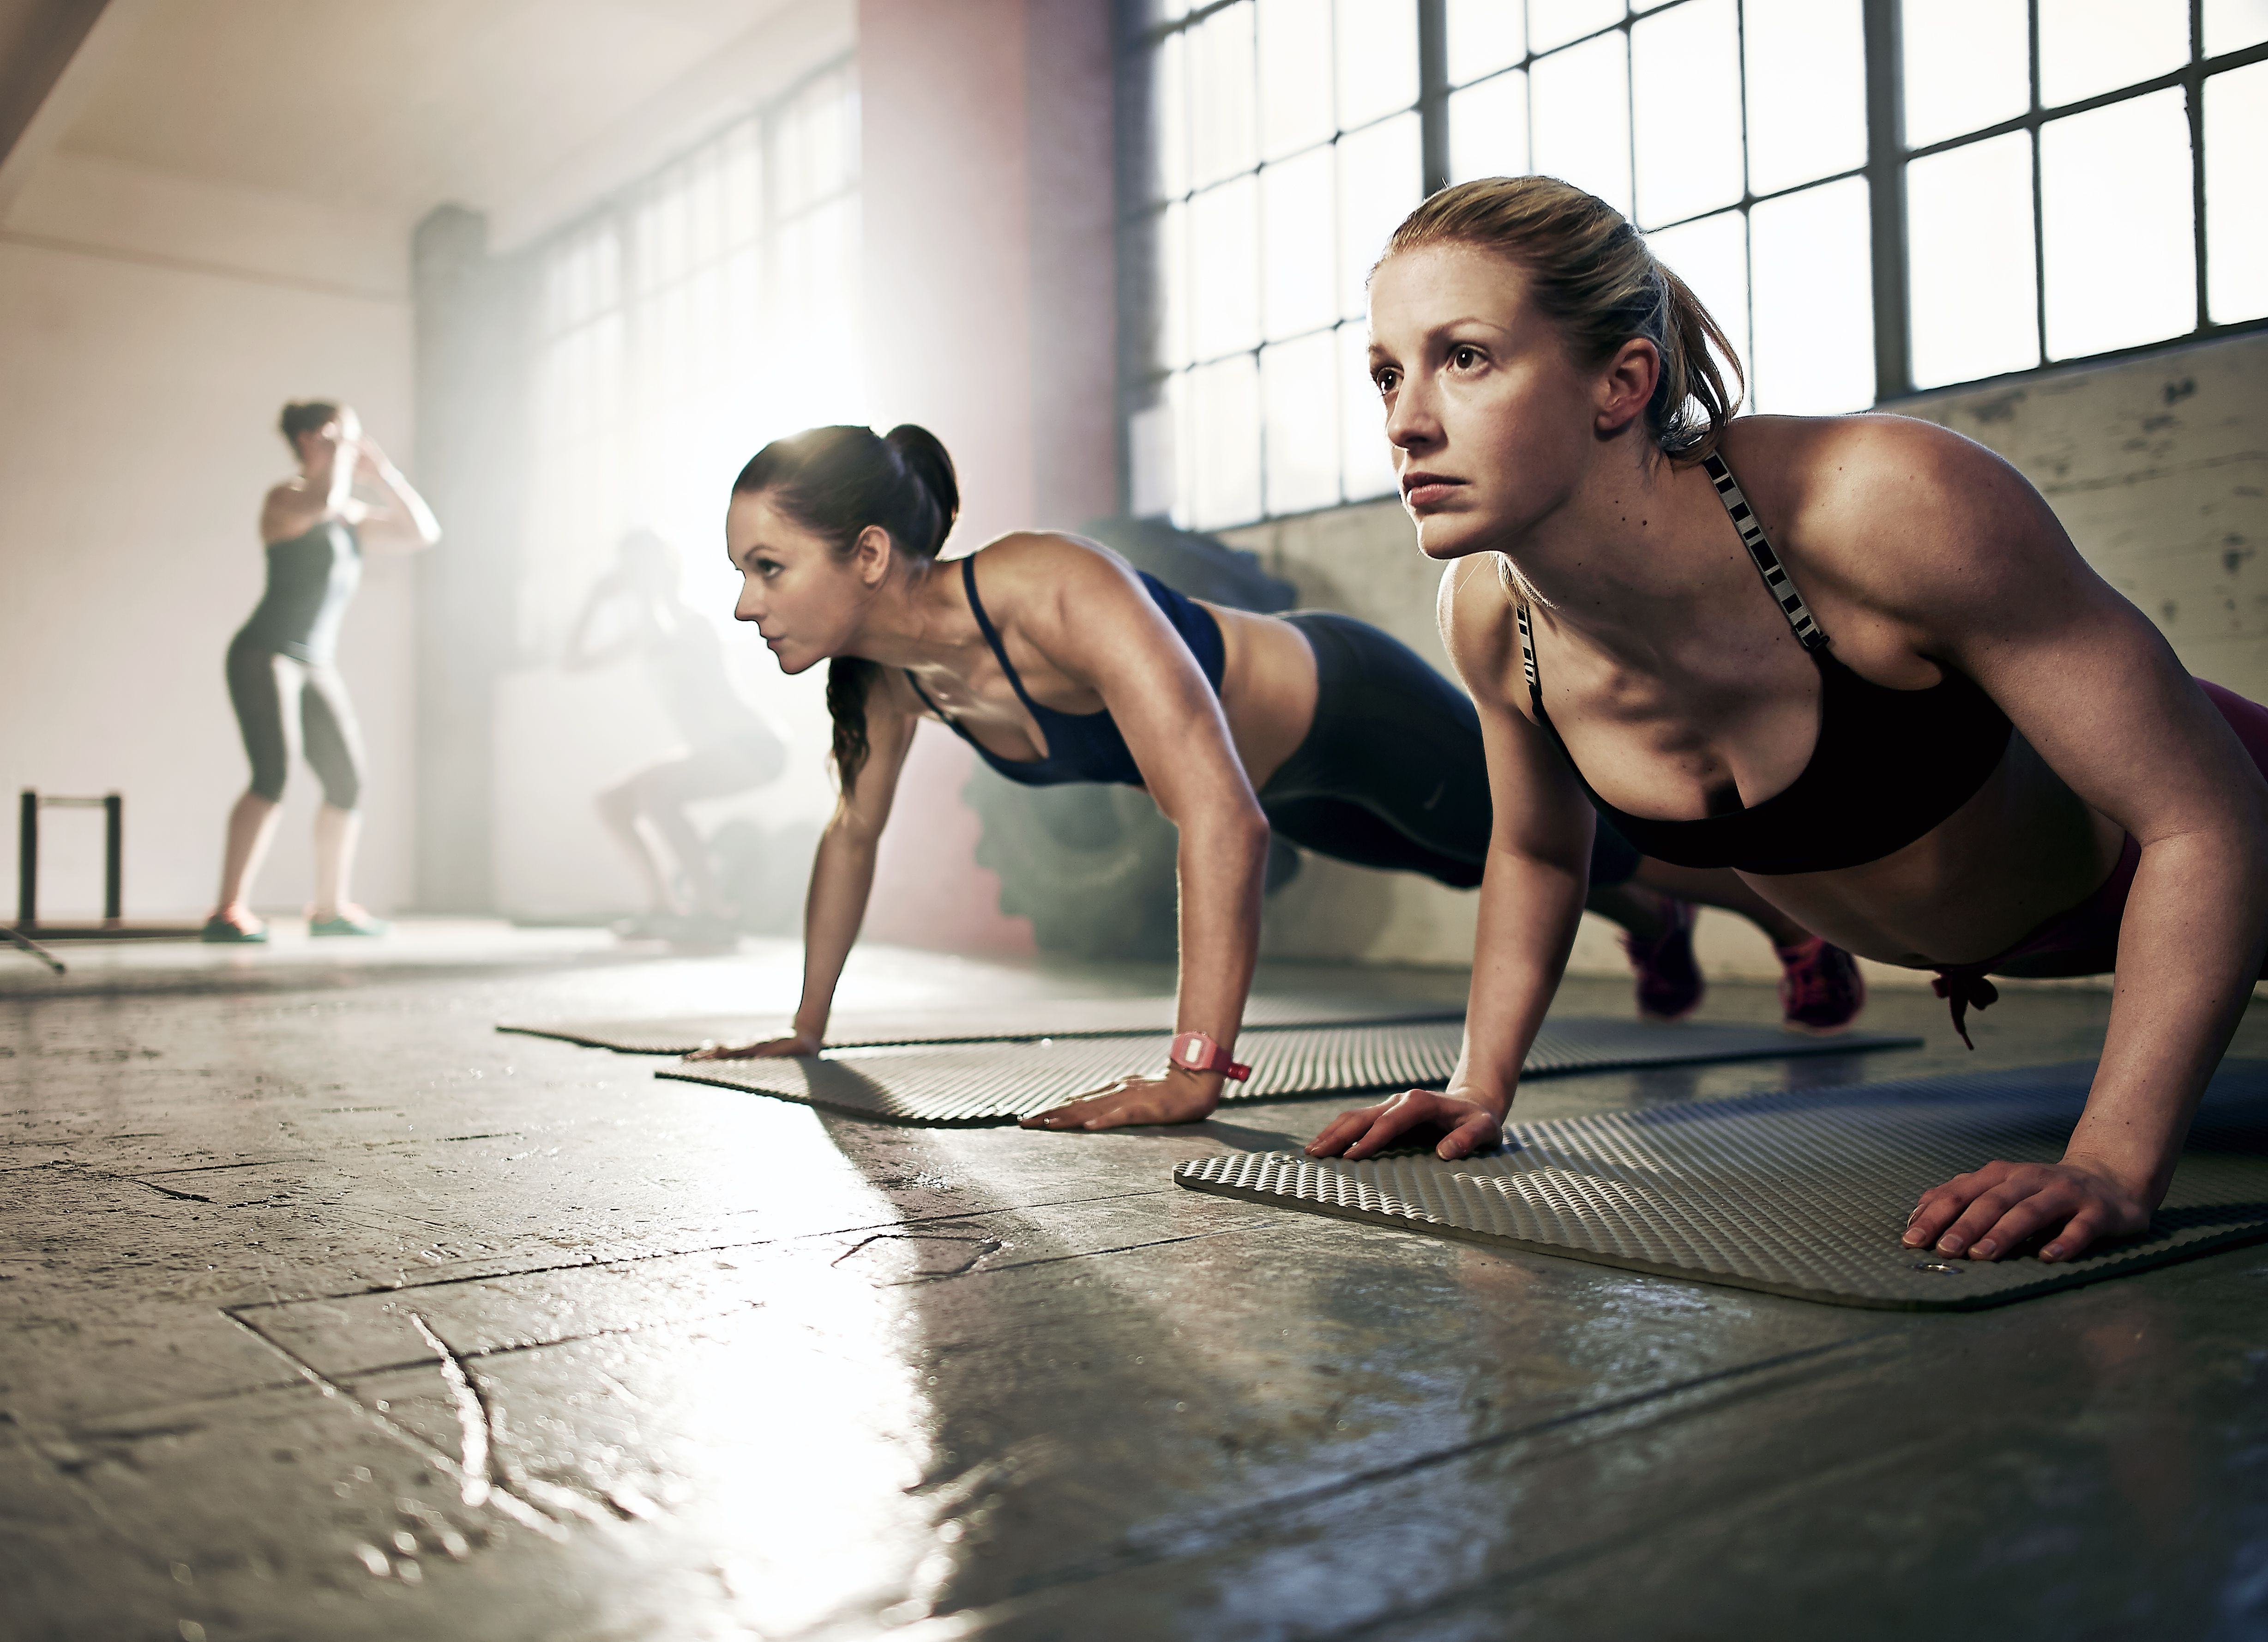 Changes Exercise May Have on Your Period